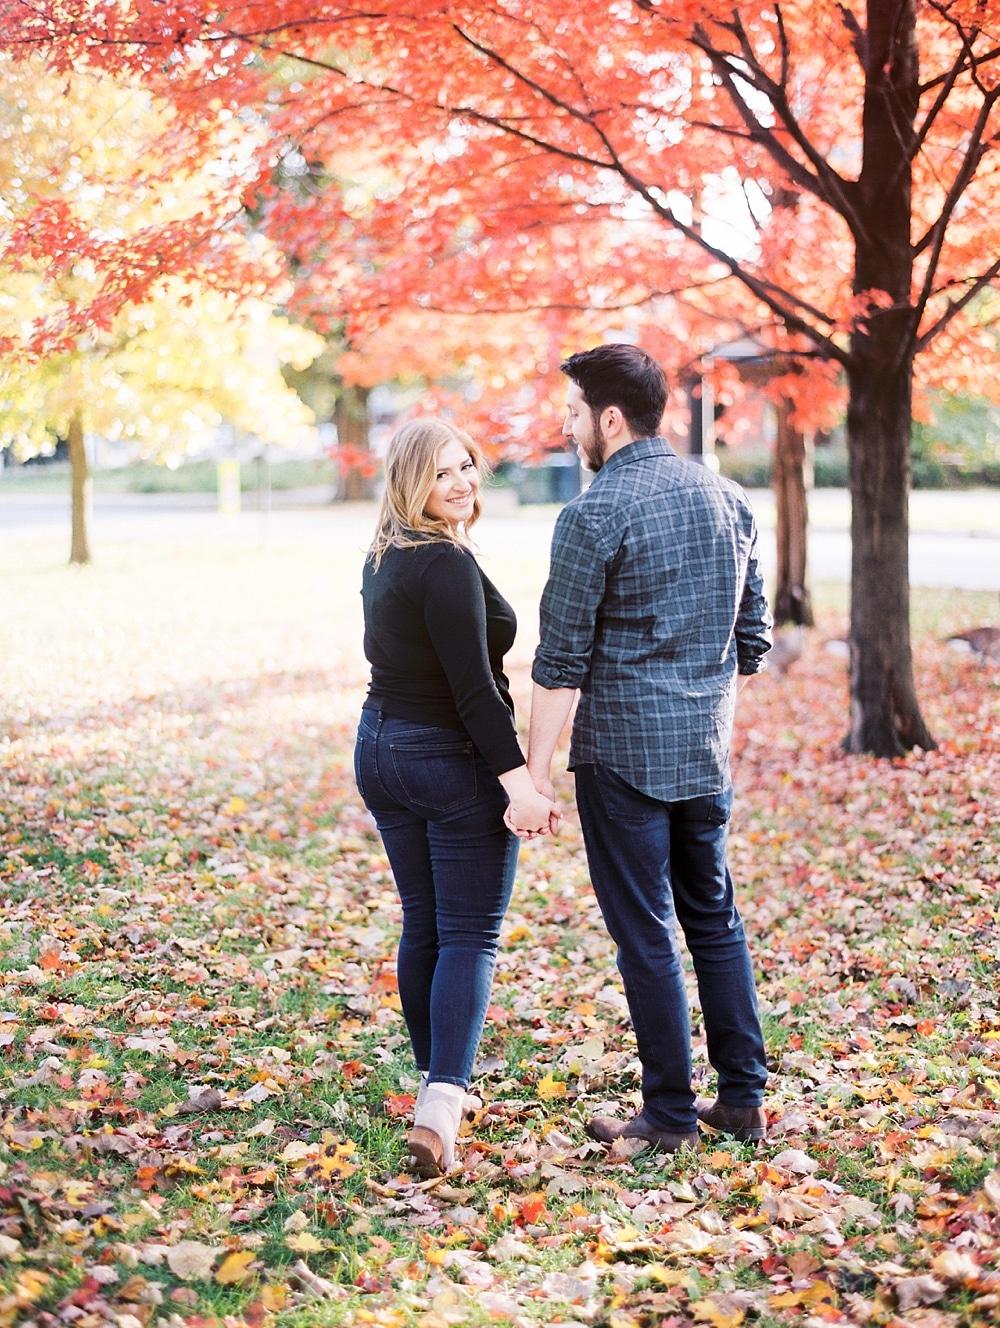 Kristin-La-Voie-Photography-Chicago-Wedding-Photographer-South-Pond-Dog-Engagement-Lincoln-Park-26